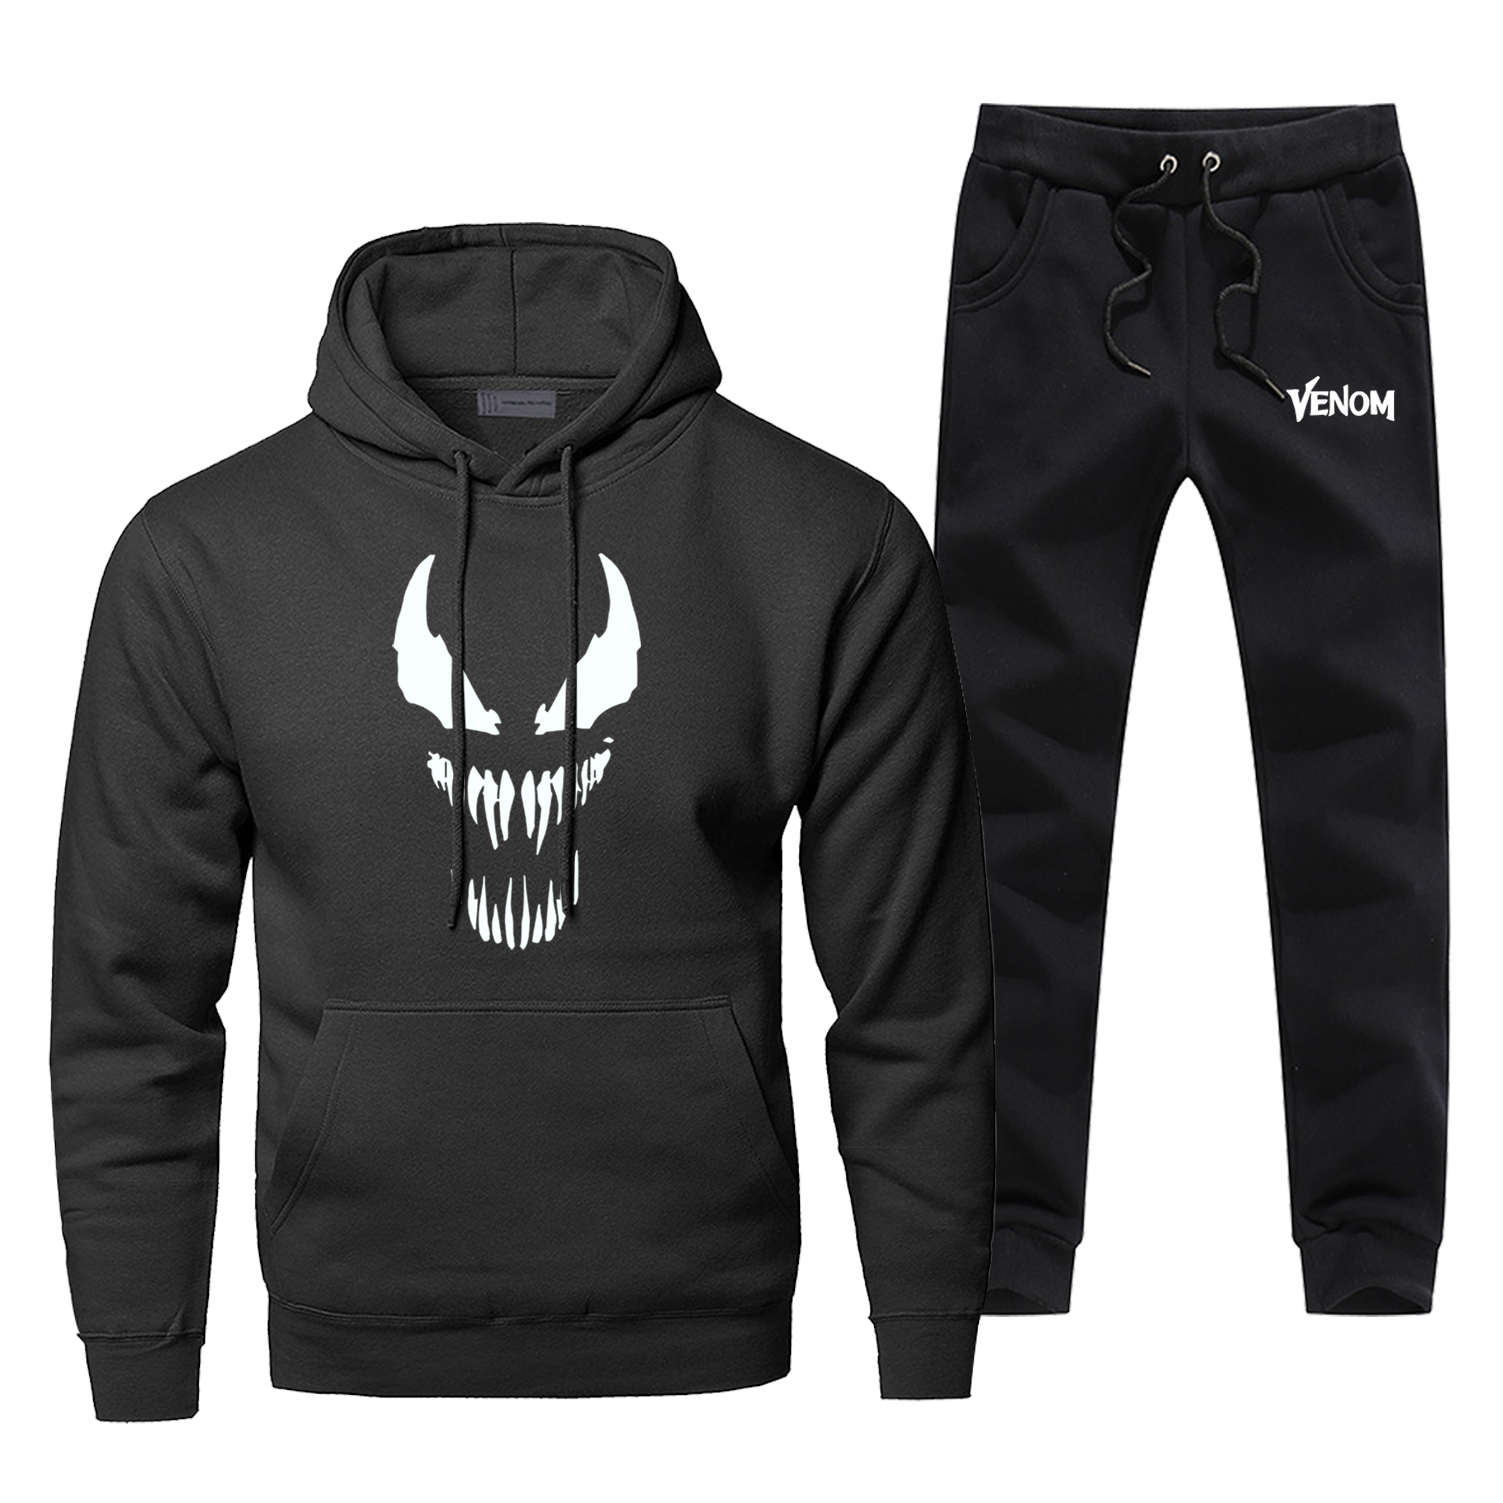 Fashion Men Marvel Movie Venom Print Hoodies Pants 2pcs Sets Men Fleece Sportswear Sweatpants Sweatshirt Hip Hop Streetwear